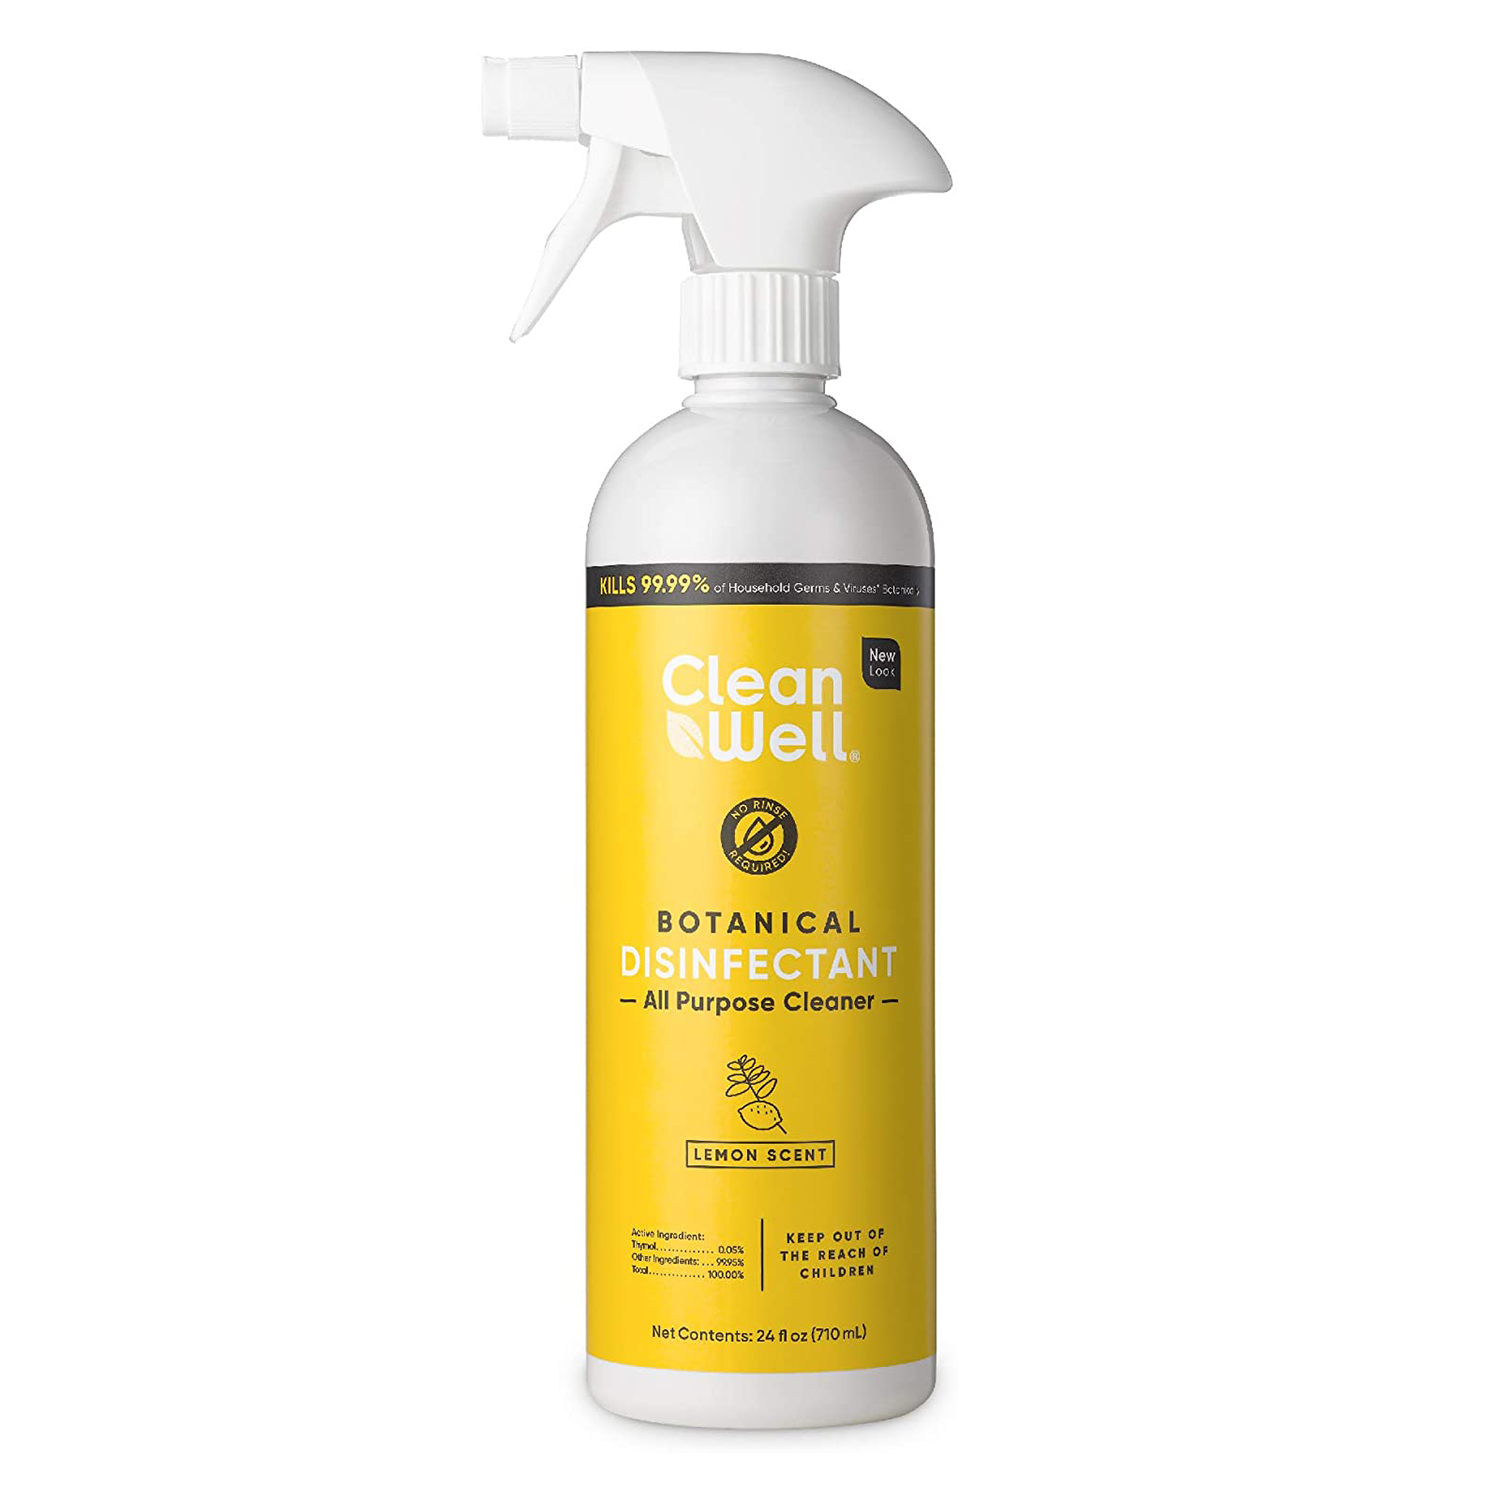 cleanwell botanical disinfectant all-purpose cleaner